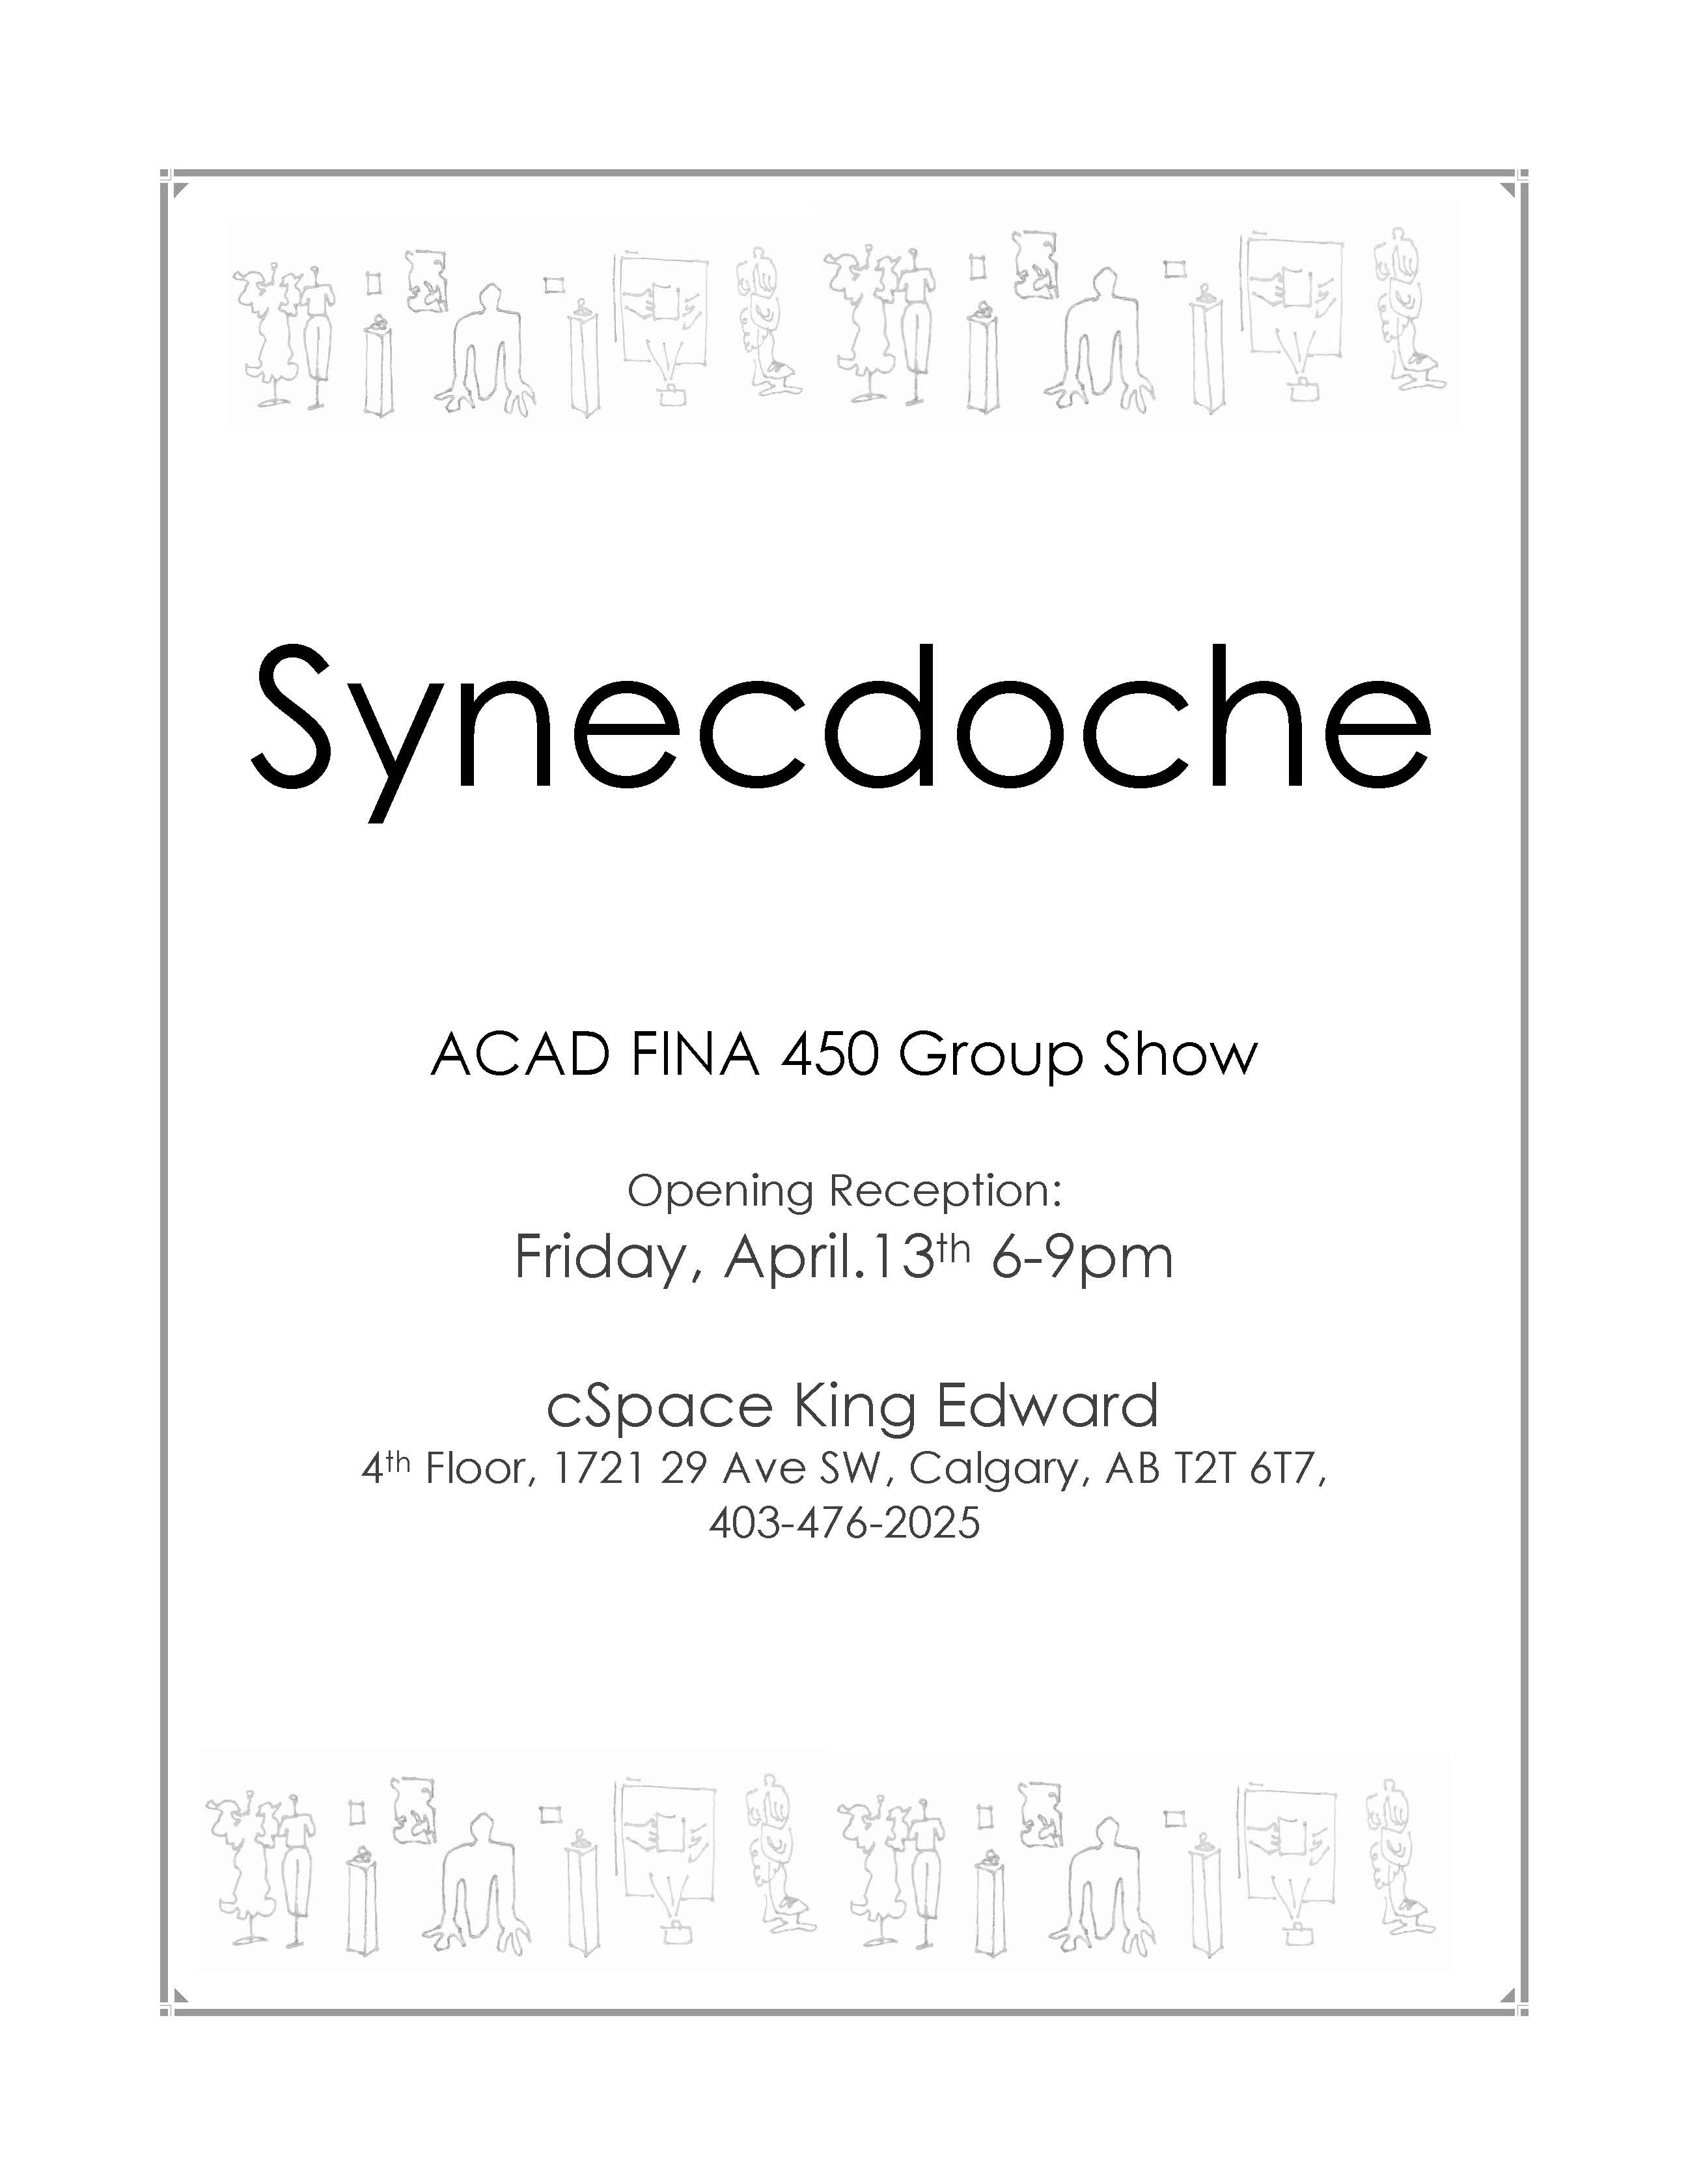 synecdoche an acad fourth year group show cspace